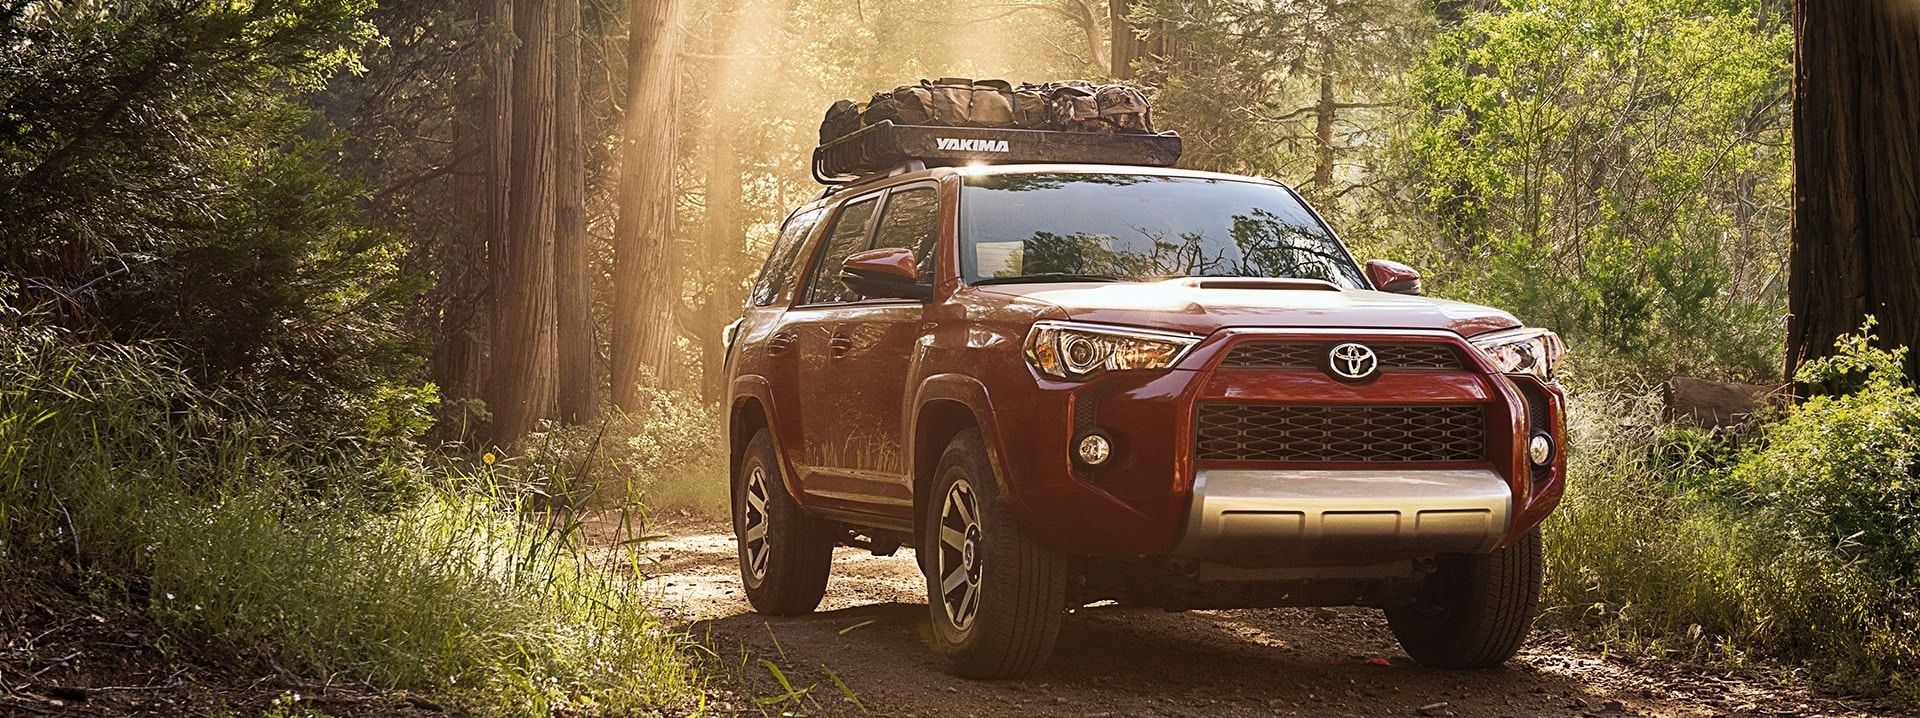 2019 Toyota 4Runner for Sale near Ypsilanti, MI